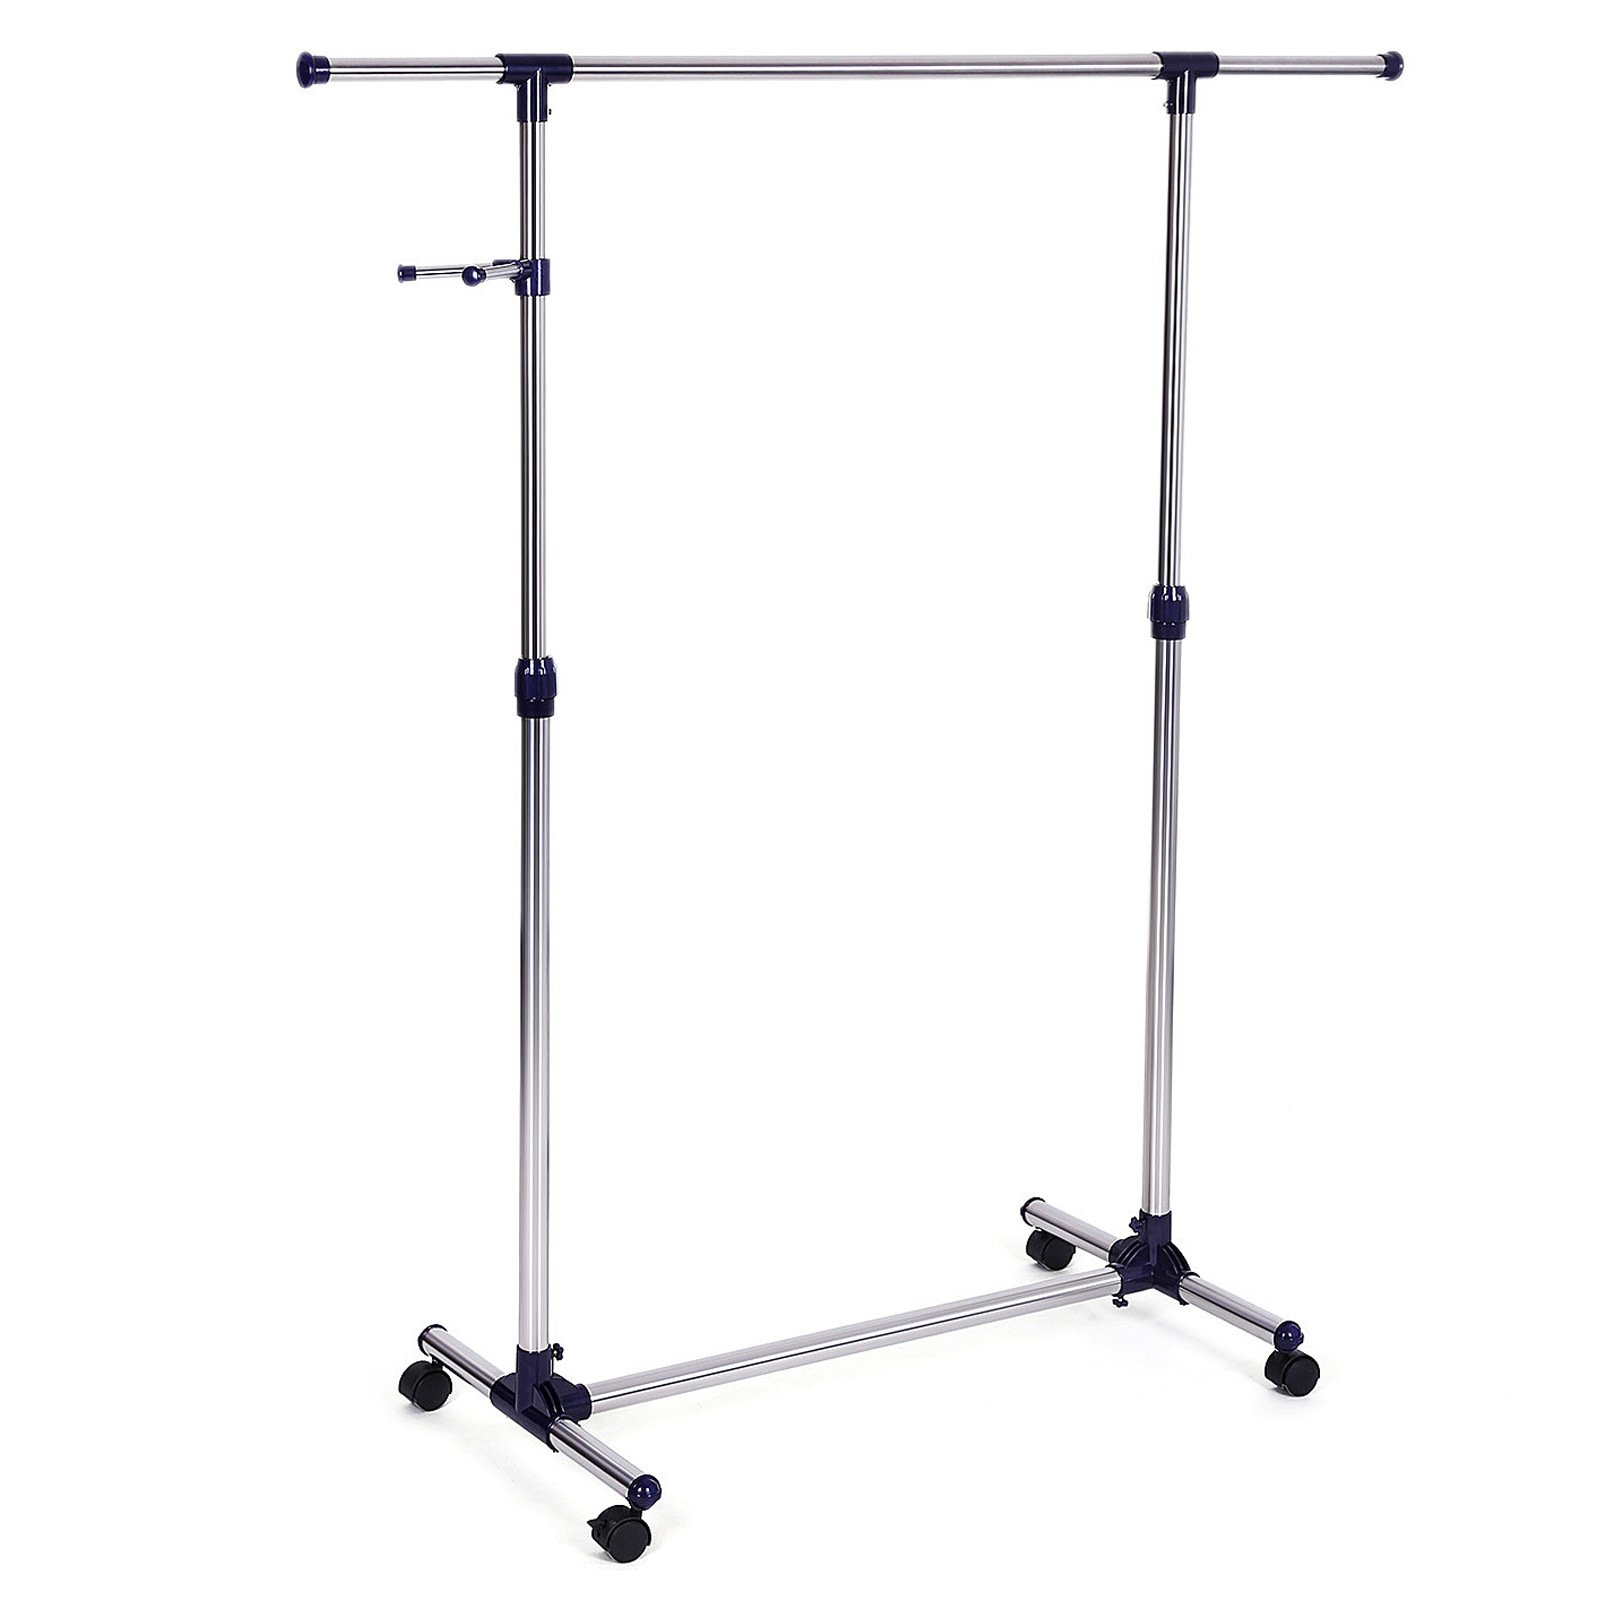 SONGMICS Rolling Clothes Rack Adjustable Garment Rack Portable Hanging Rack for Clothes with Wheels ULLR01L